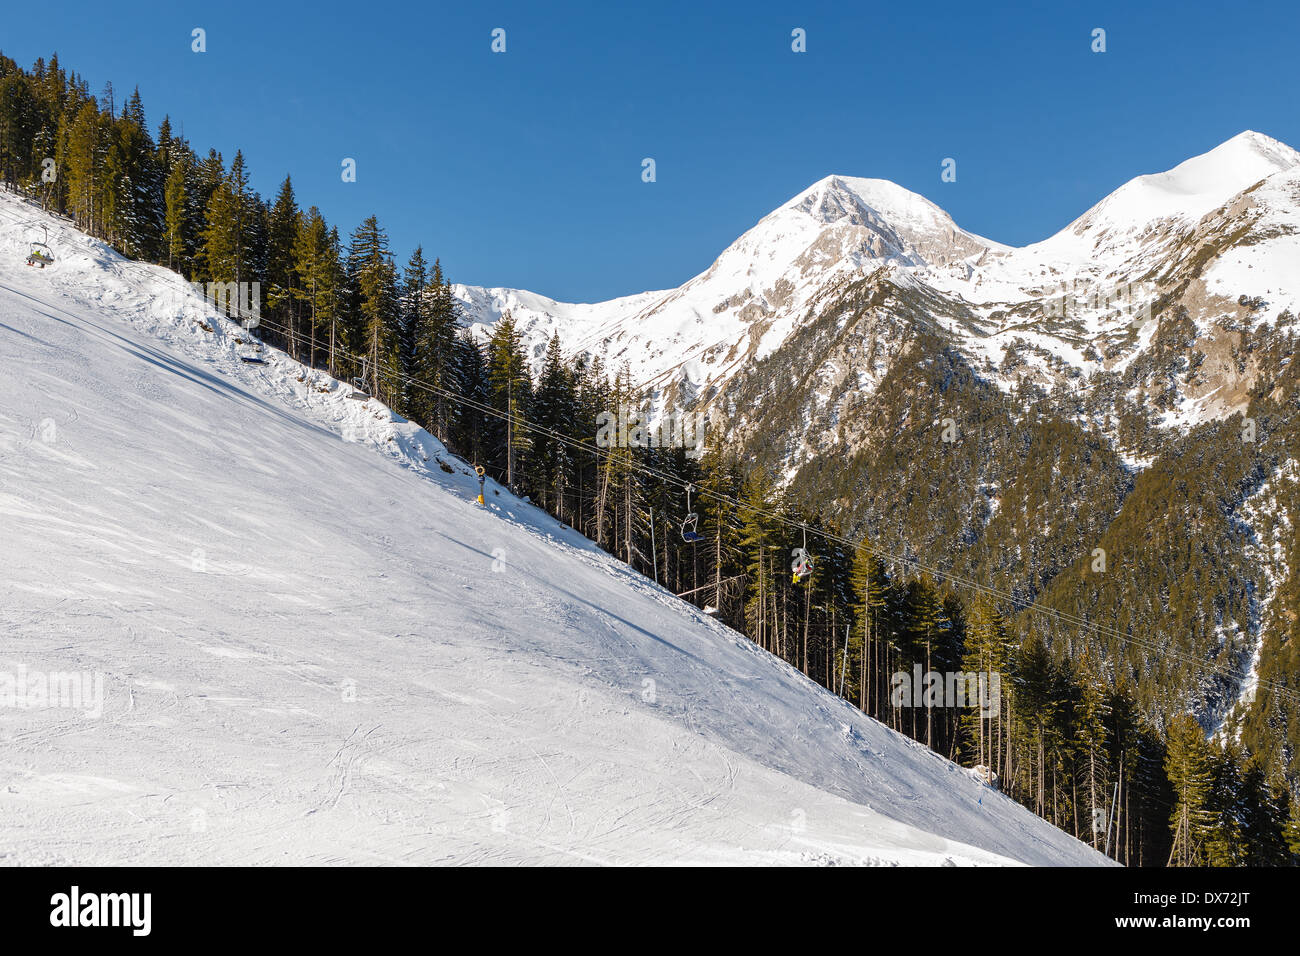 Mountain slope prepared for downhill skiing - Stock Image